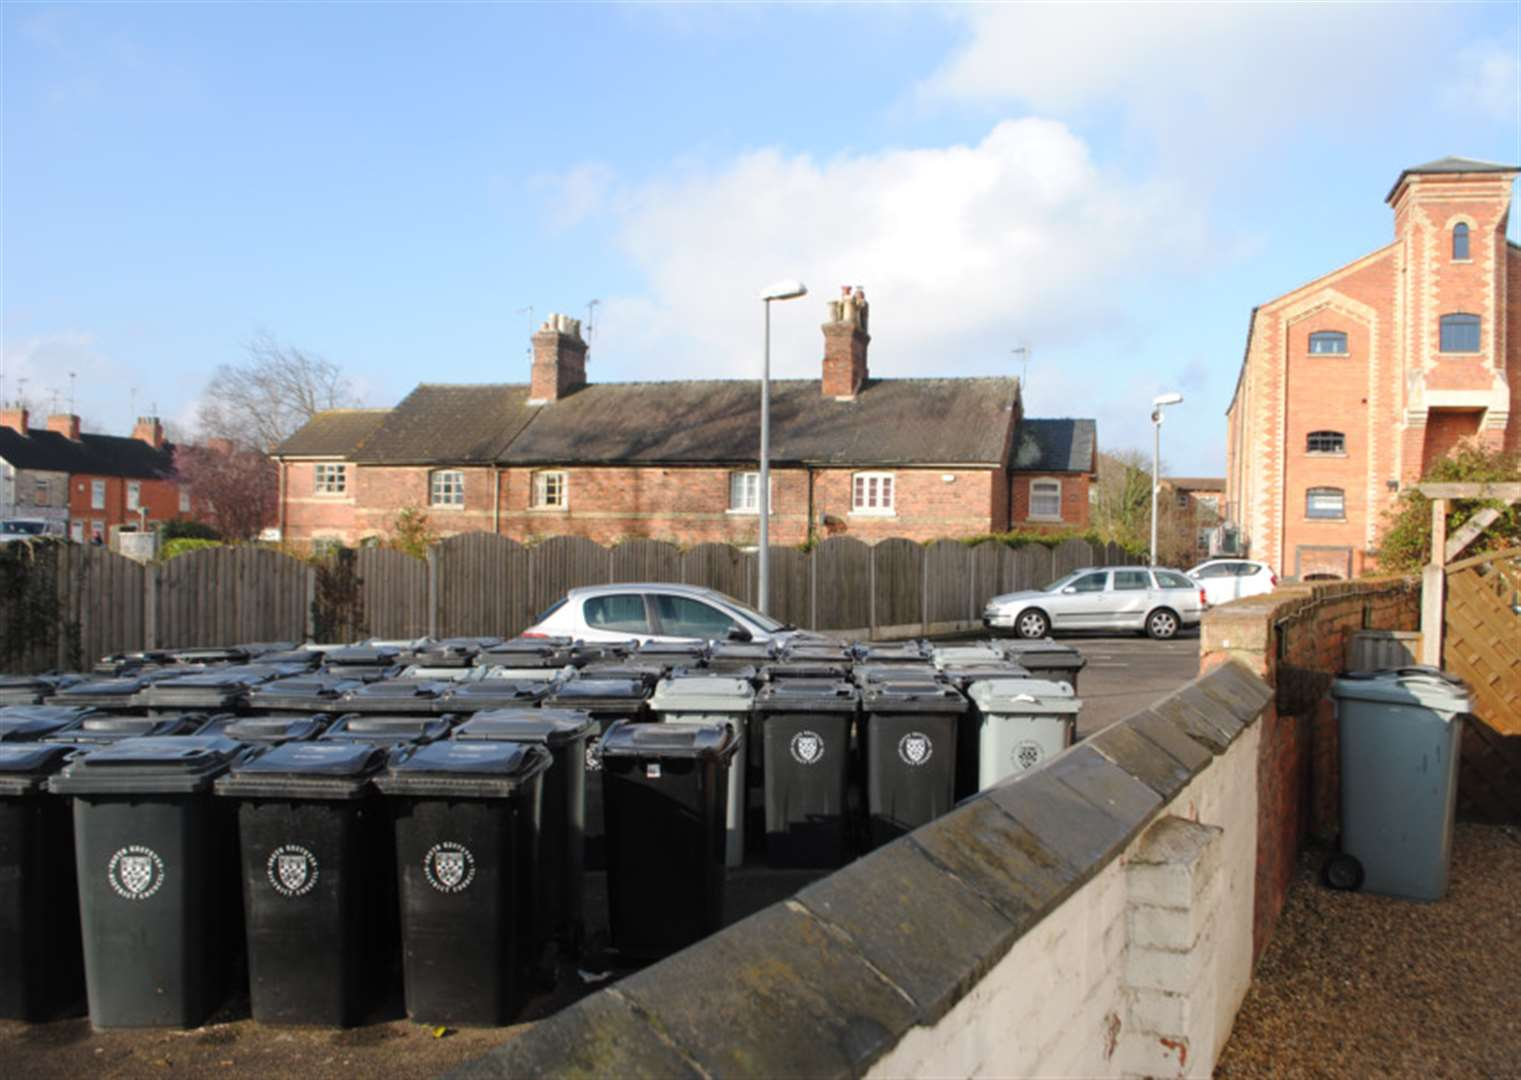 'Bins stink and are an eyesore' say Grantham neighbours